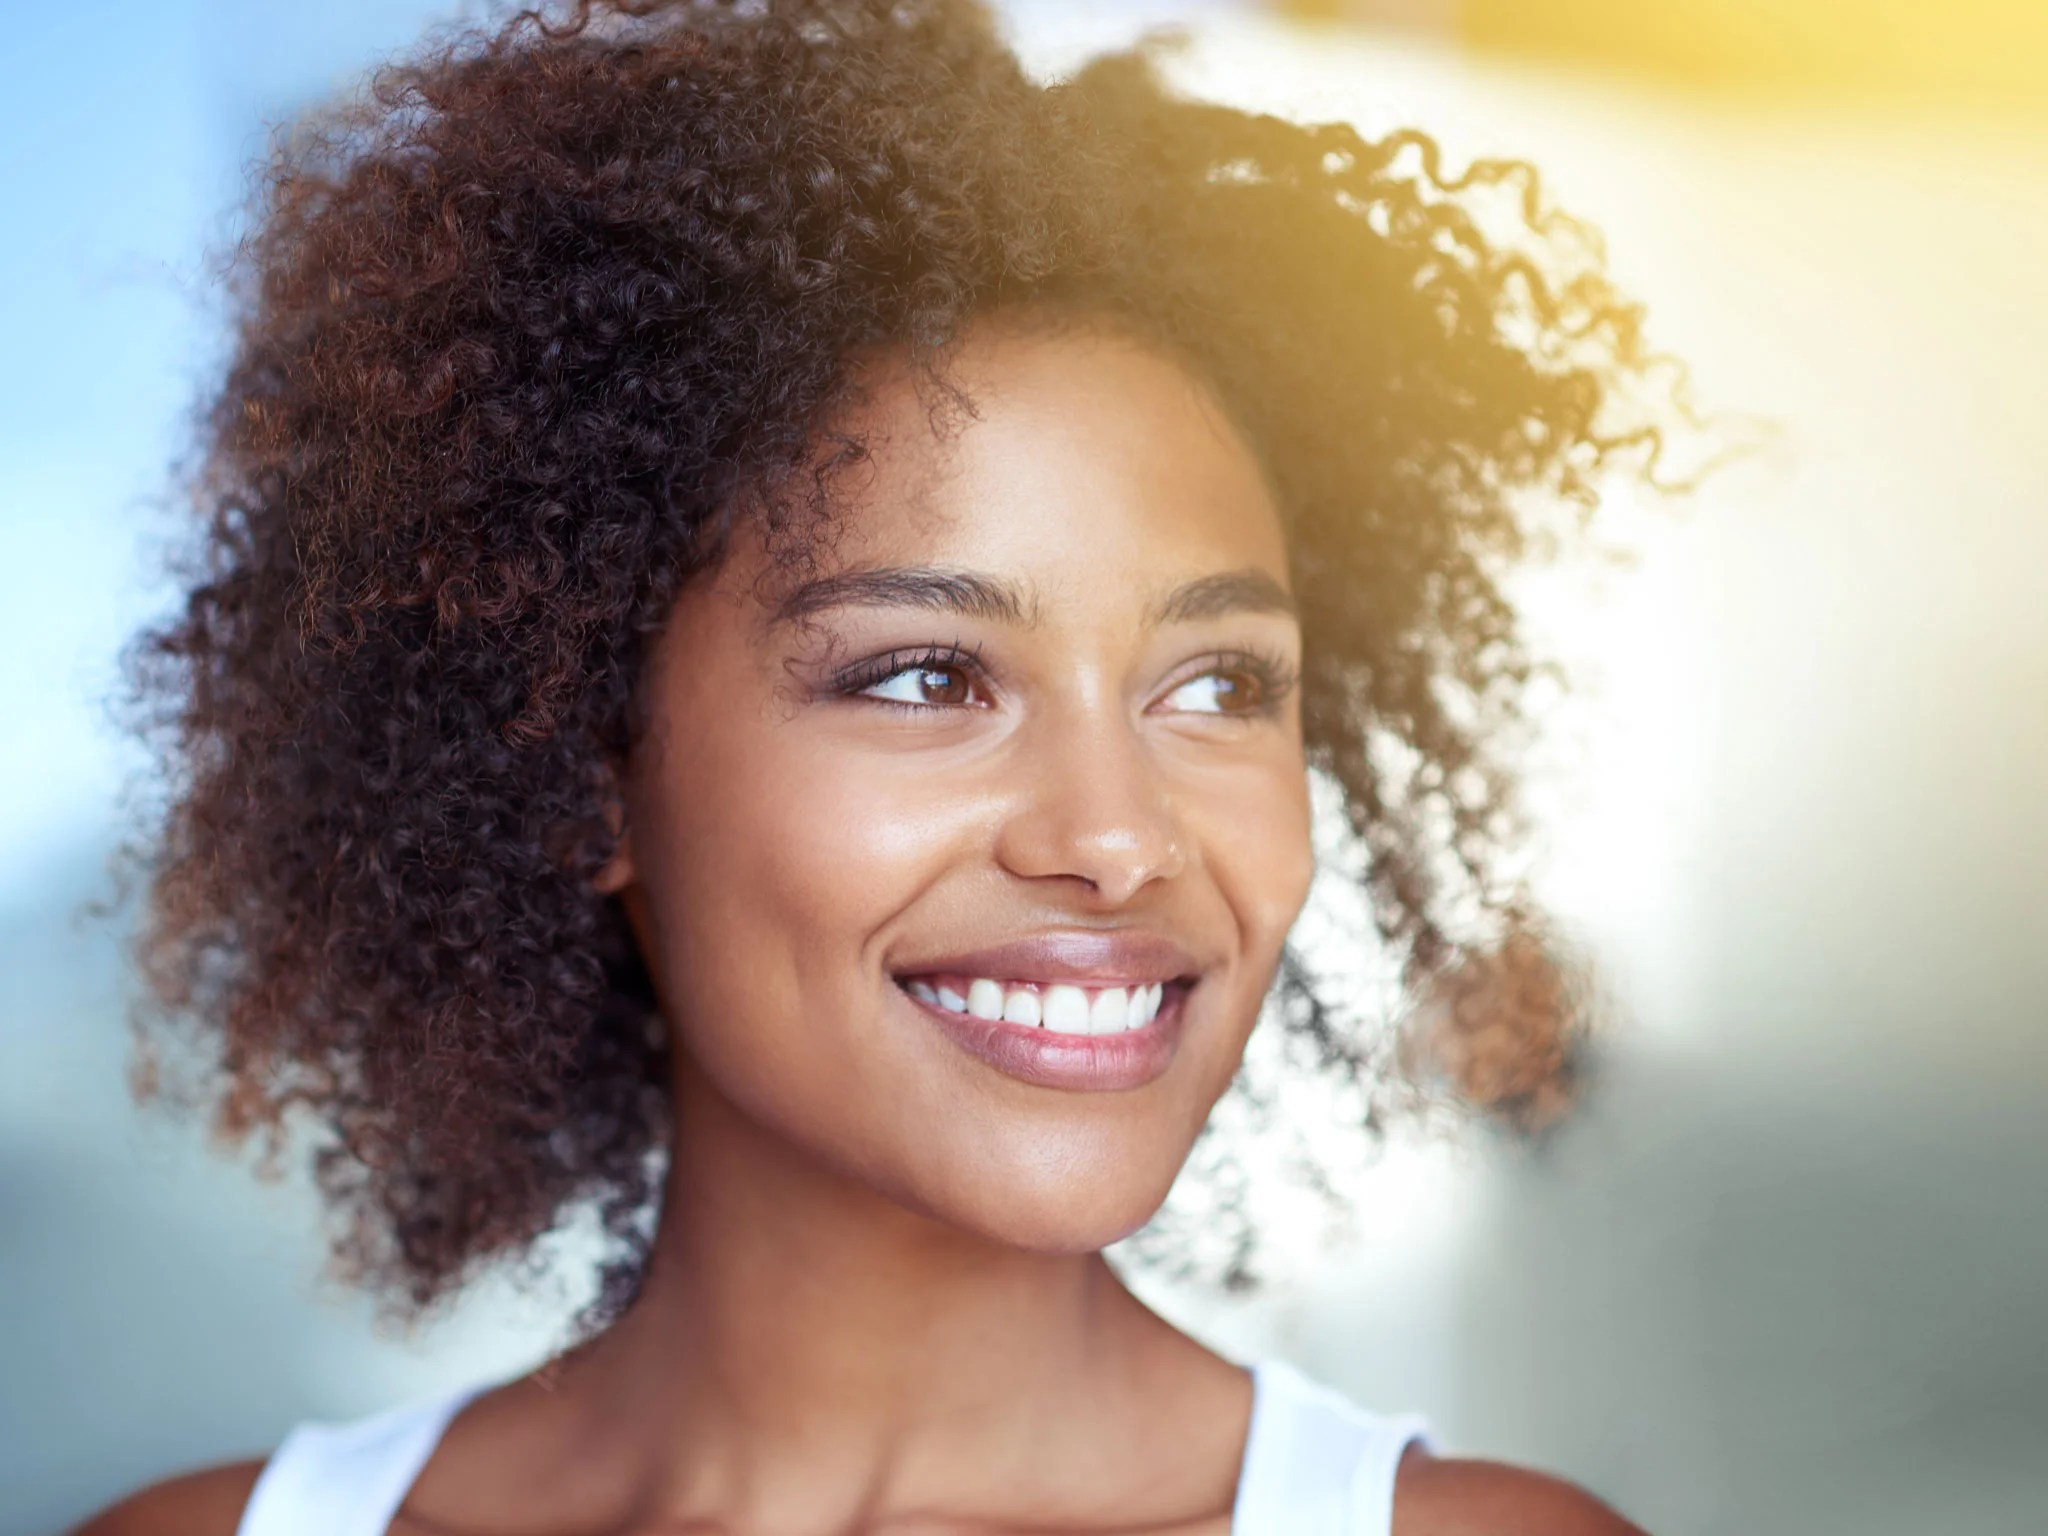 12 Best Shampoos And Conditioners For Afro Hair The Independent